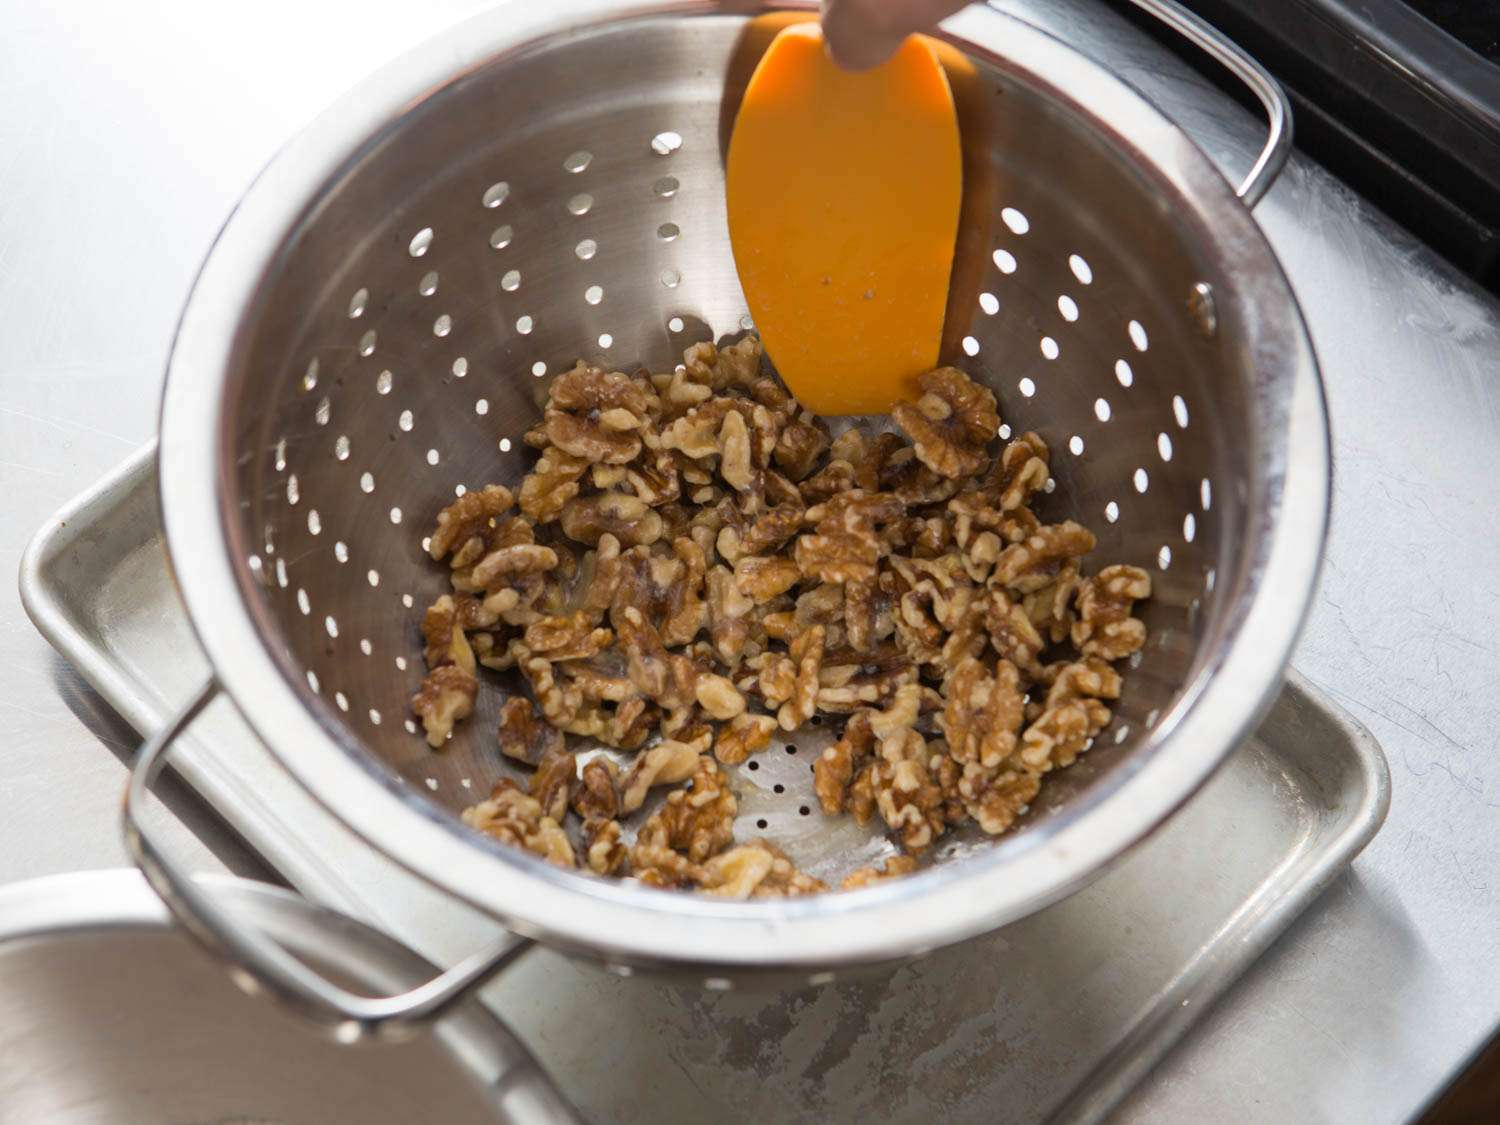 Draining egg white- and orange juice-coated walnuts in a colander.